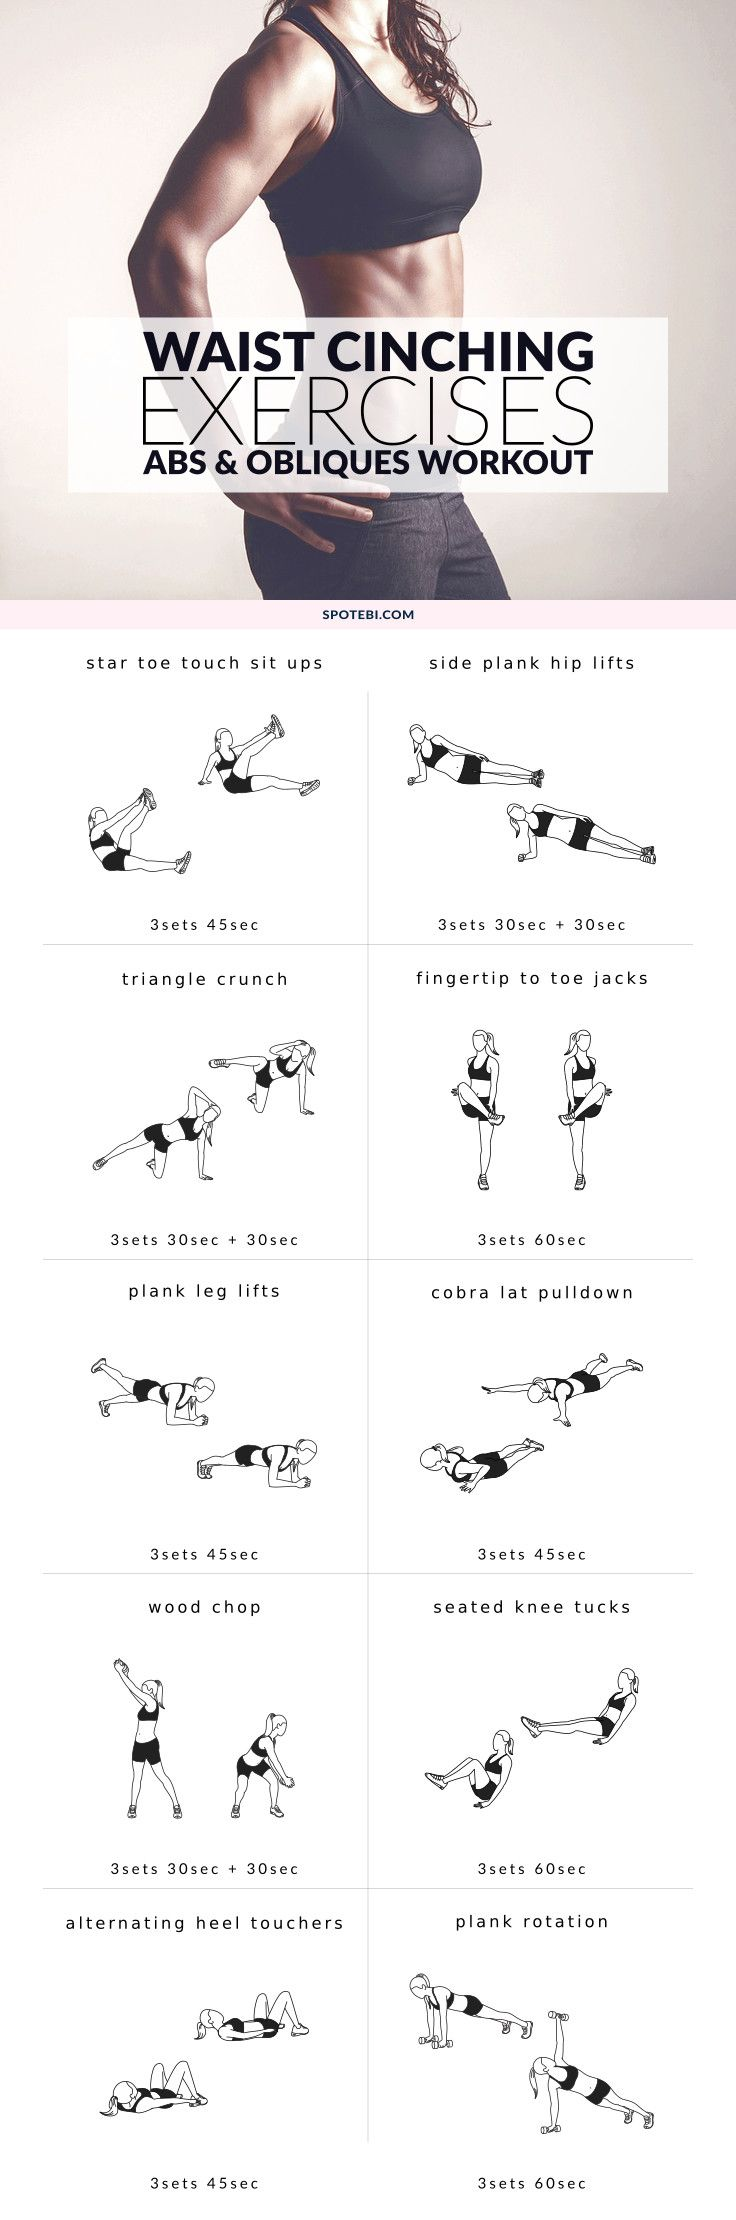 Work your abs and obliques with these core exercises for women. A 30-minute waist cinching workout that will activate your obliques and define the waistline. Start the timer and enjoy your workout! https://www.spotebi.com/workout-routines/core-exercises-for-women-abs-obliques-workout/